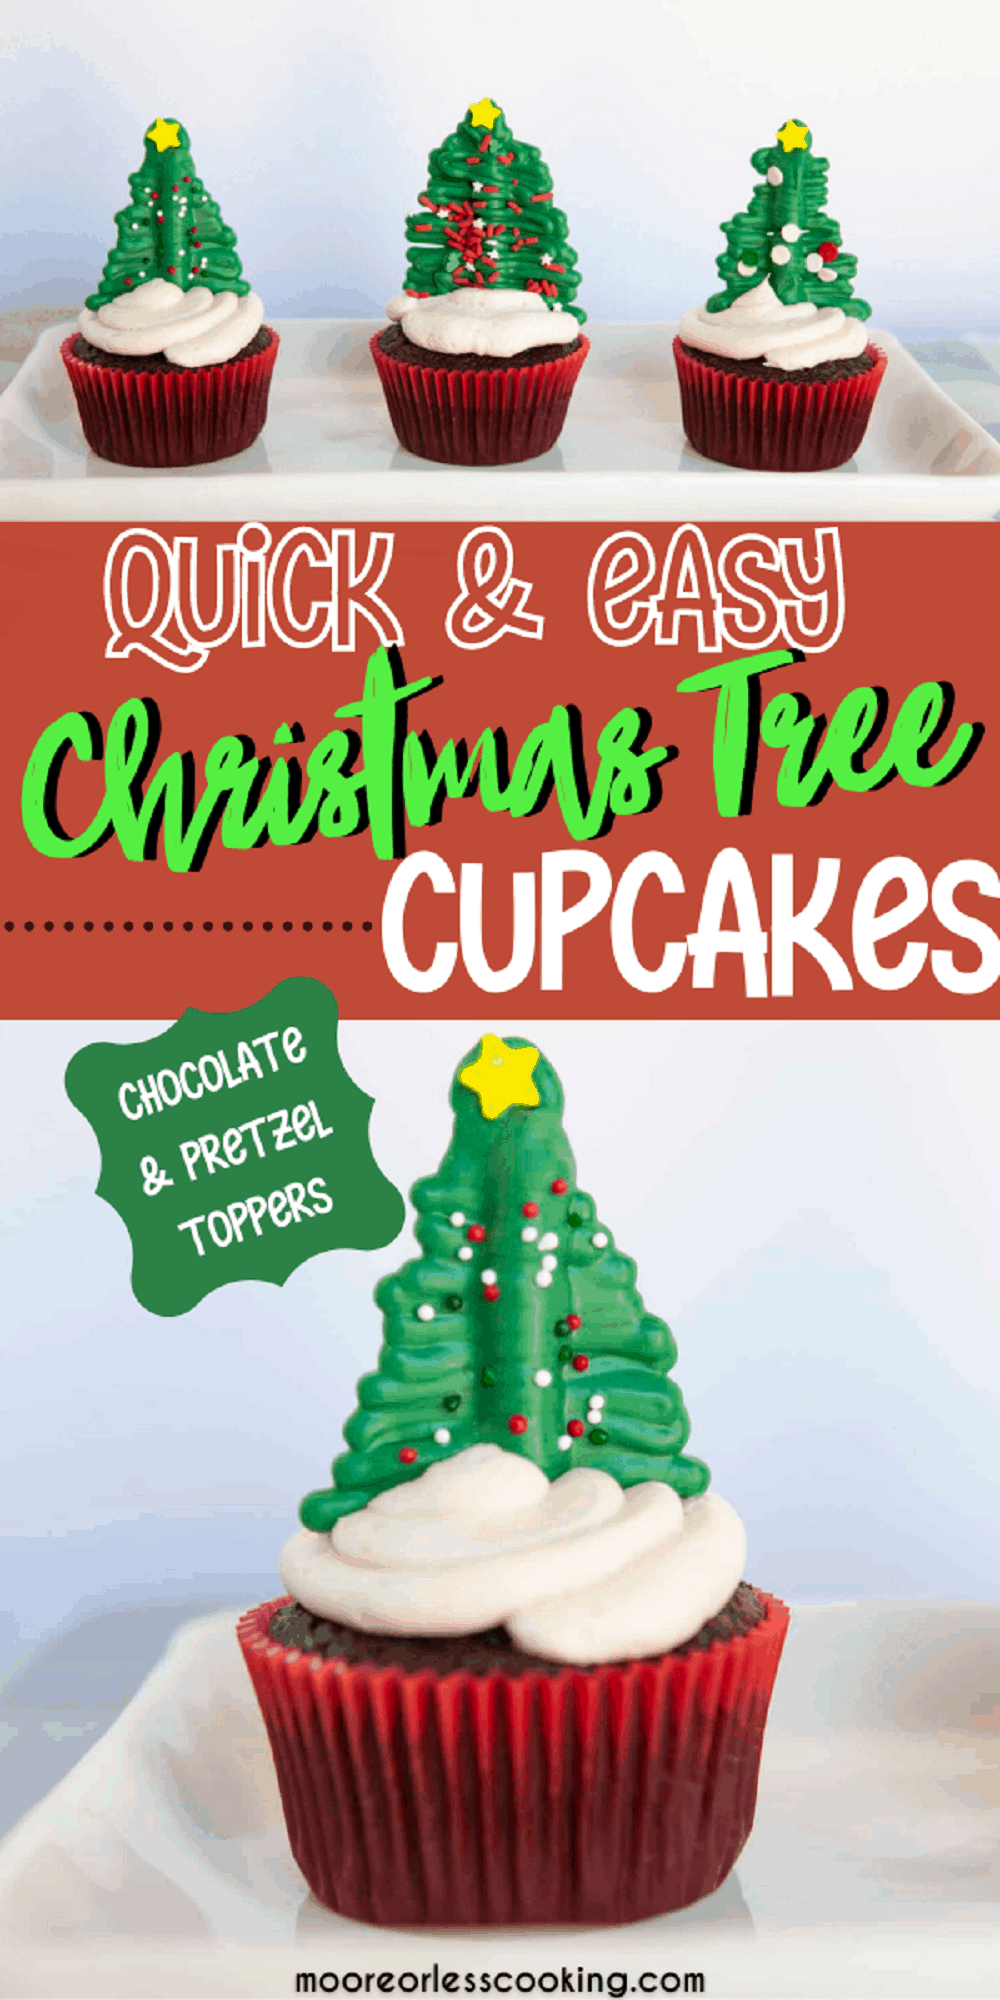 These Christmas Tree Cupcakes will be an instant hit with kids as well as adults this holiday season. Sitting on top of each delicious cupcake is a cute evergreen tree topper that's made out of chocolate and pretzels! It's an easy craft that's perfect for a decorating party. via @Mooreorlesscook